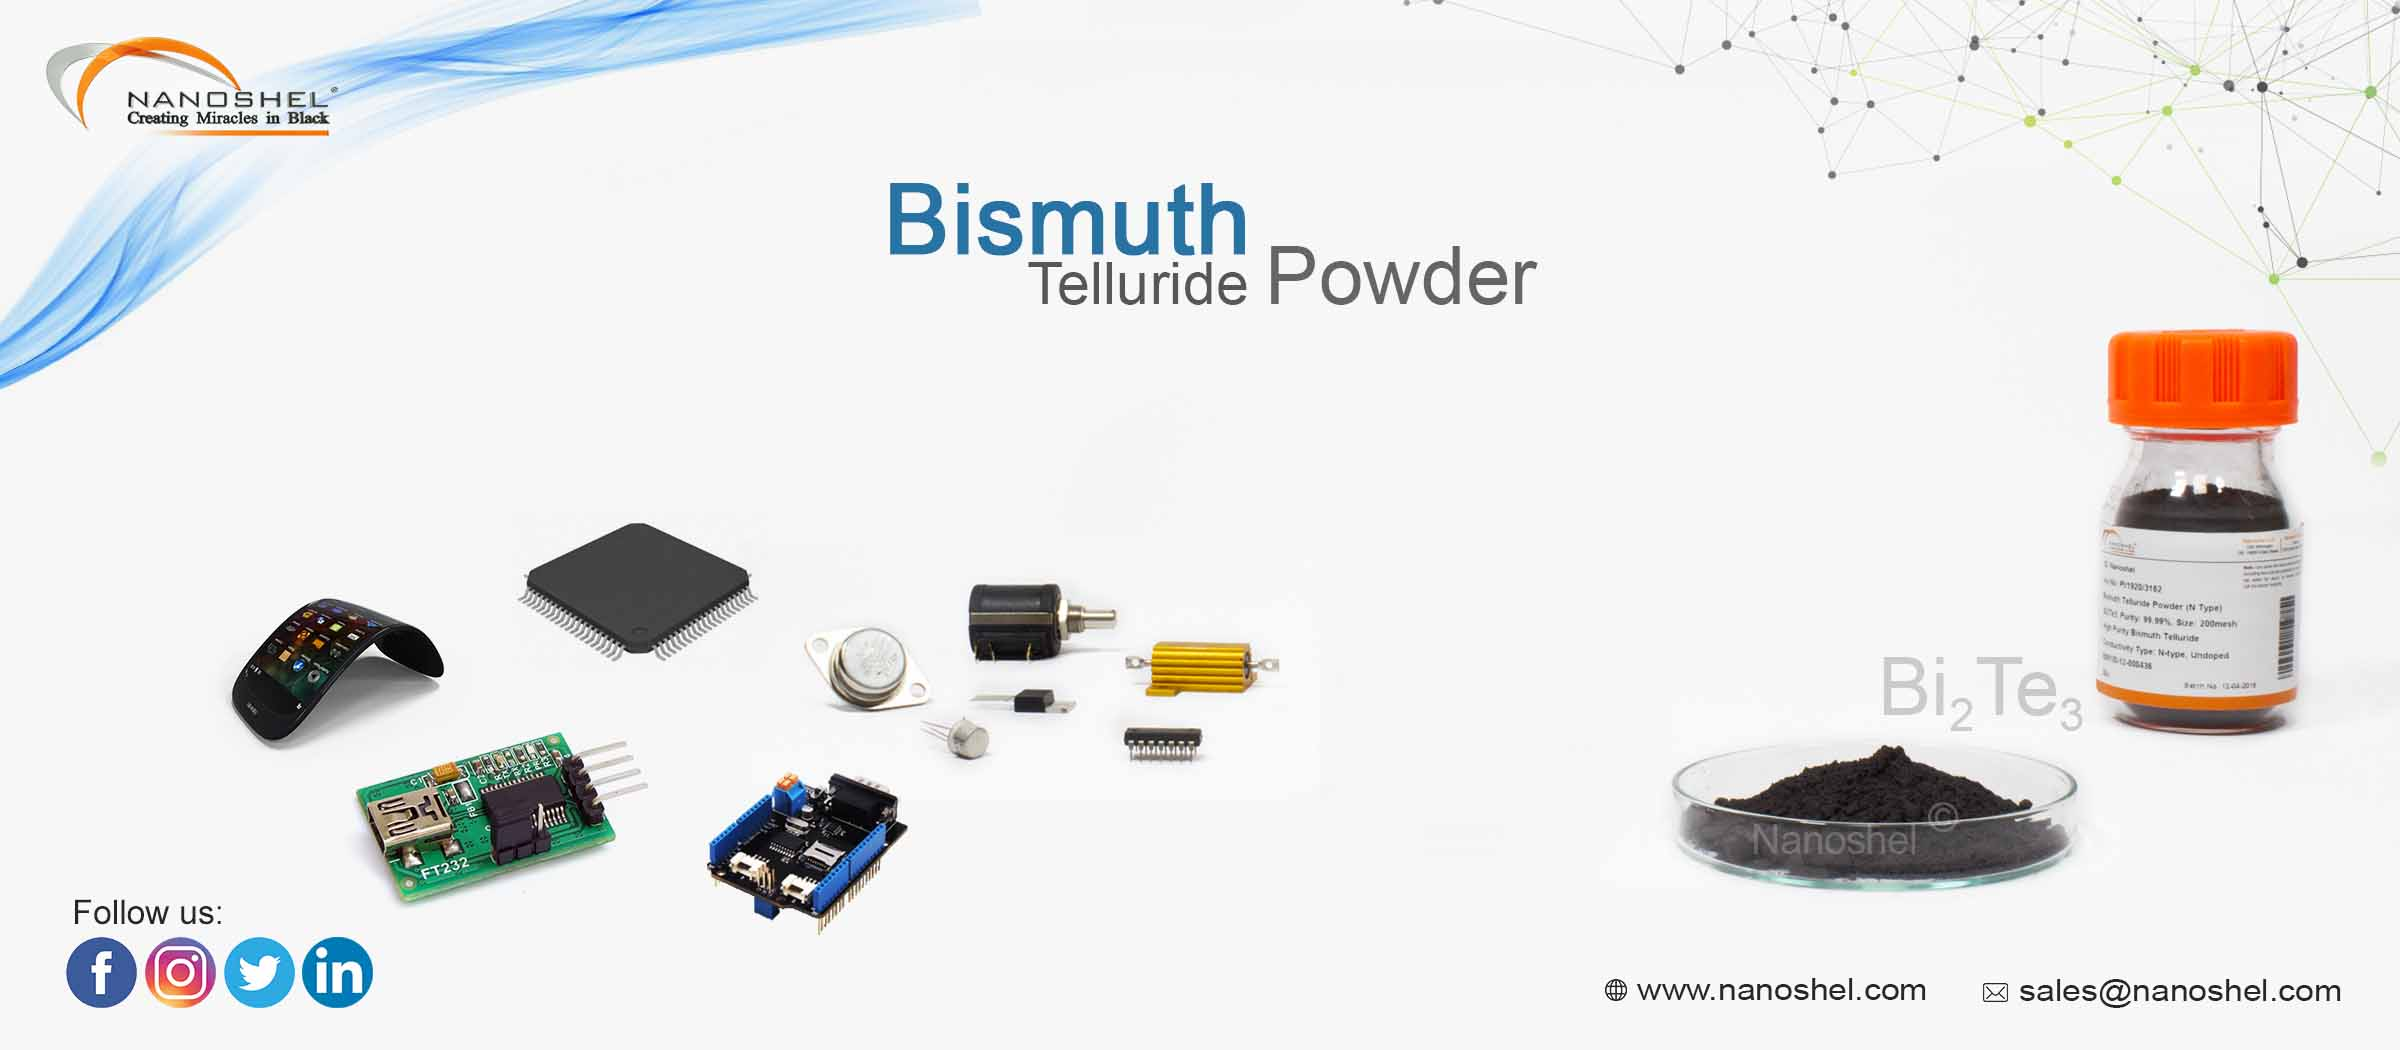 Bismuth Telluride Powder